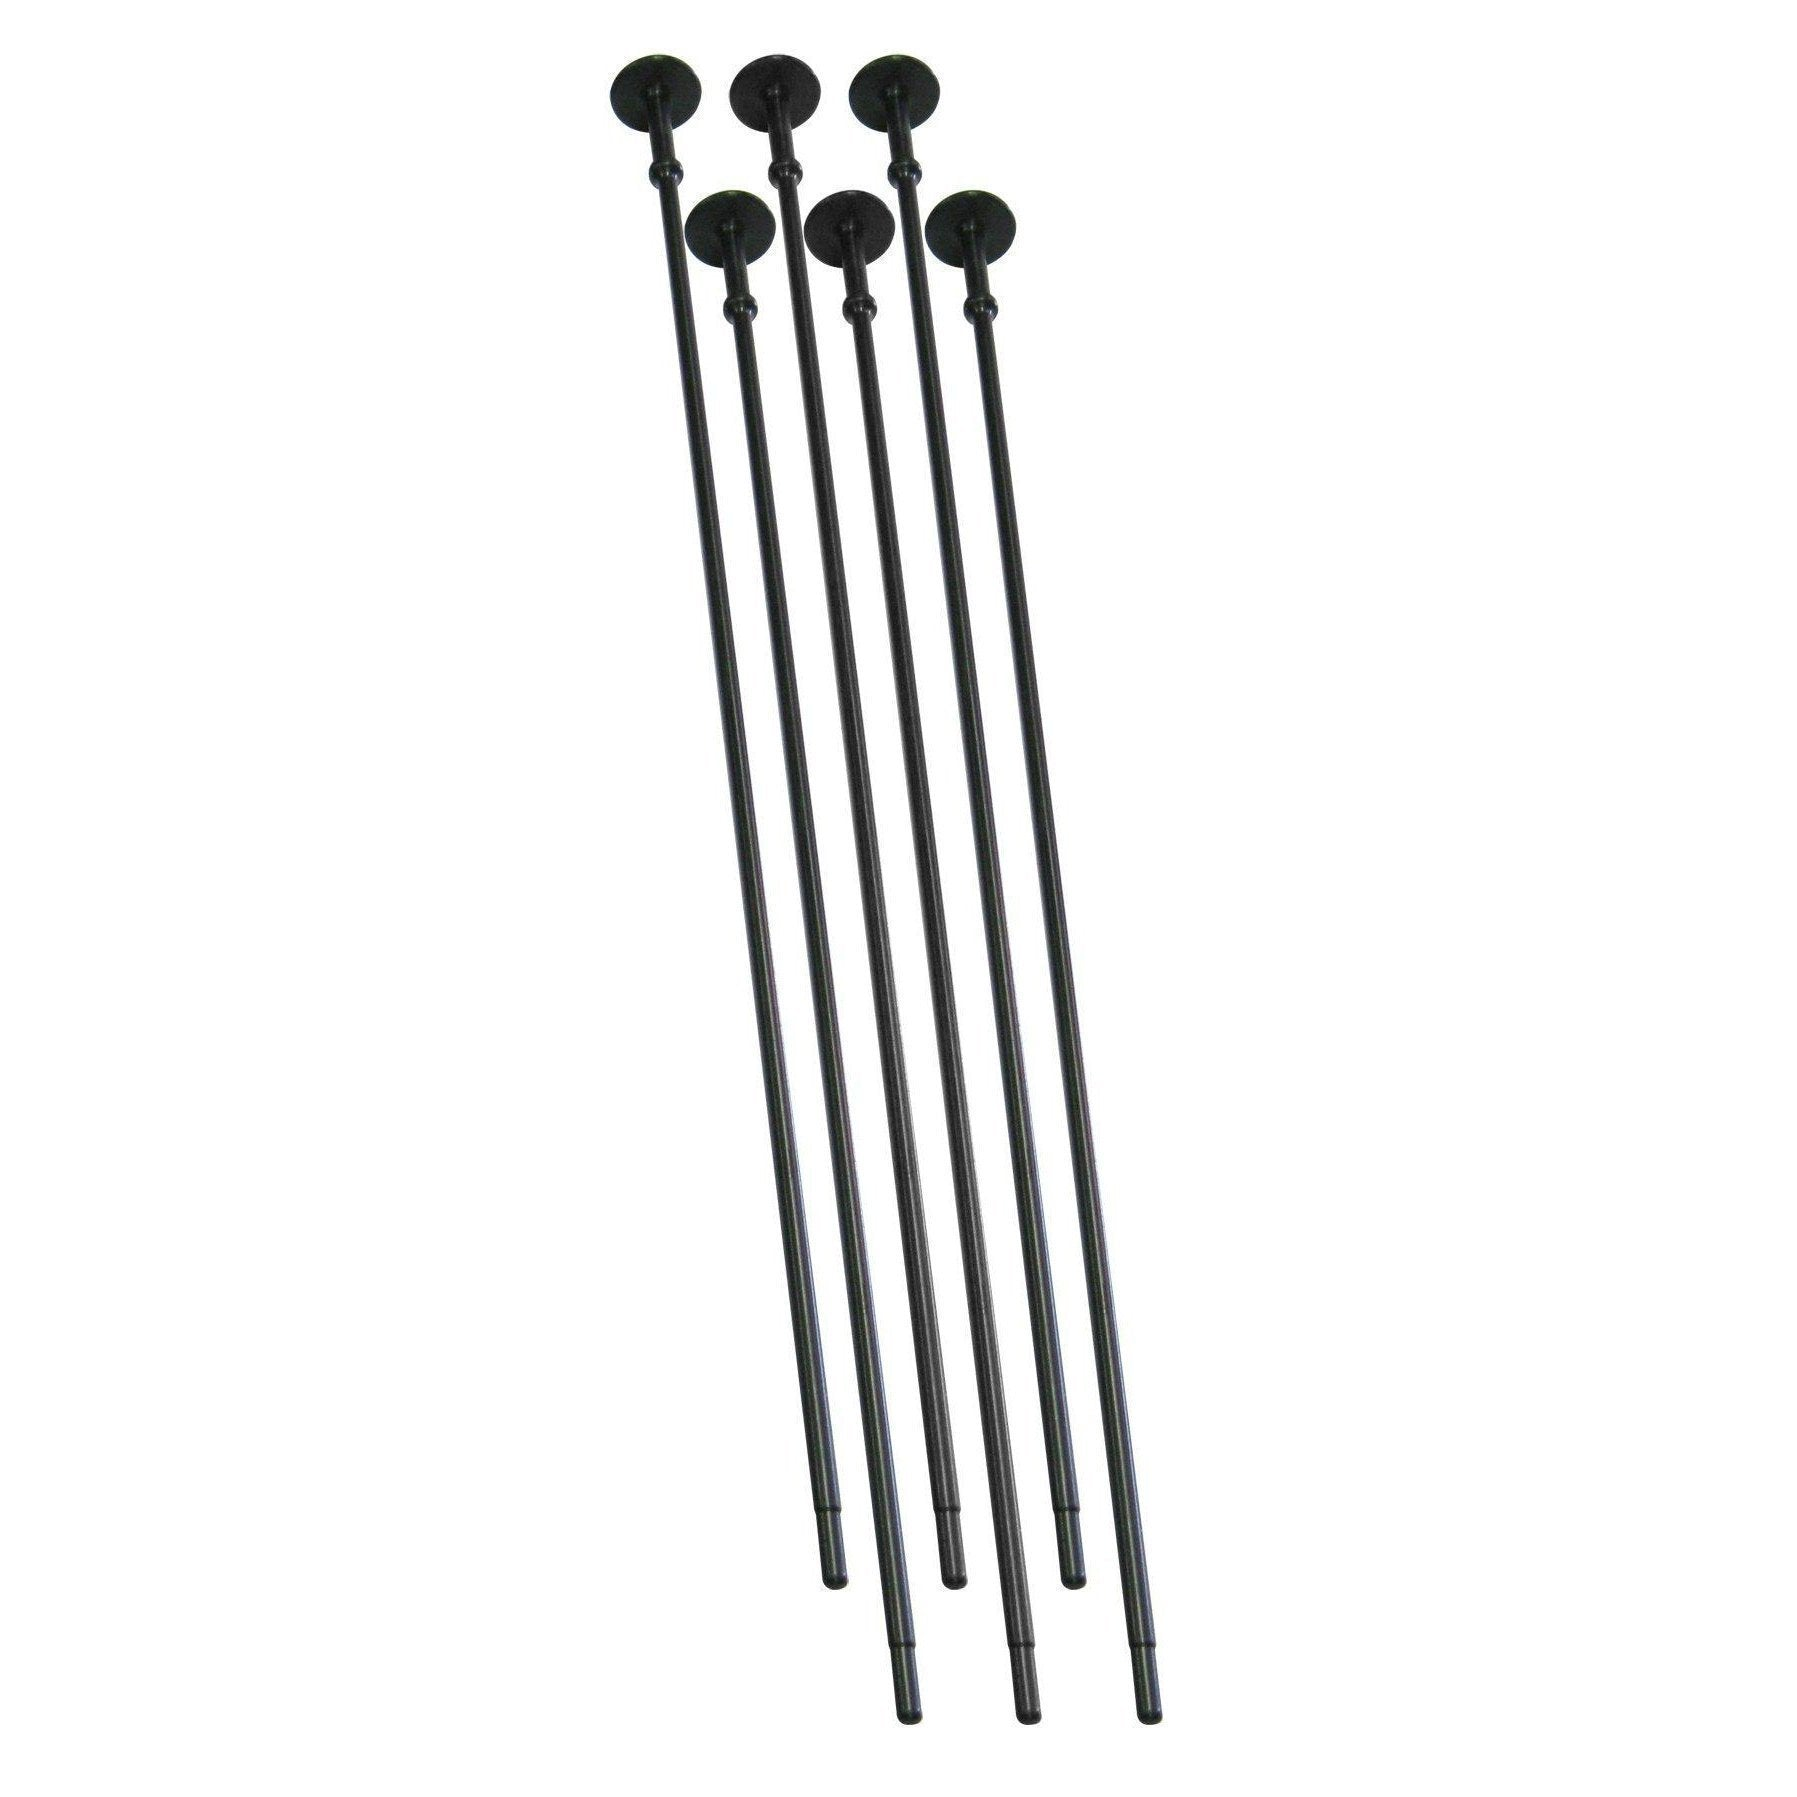 Liberty Safe-accessory-storage-rifle-rod-6-pack